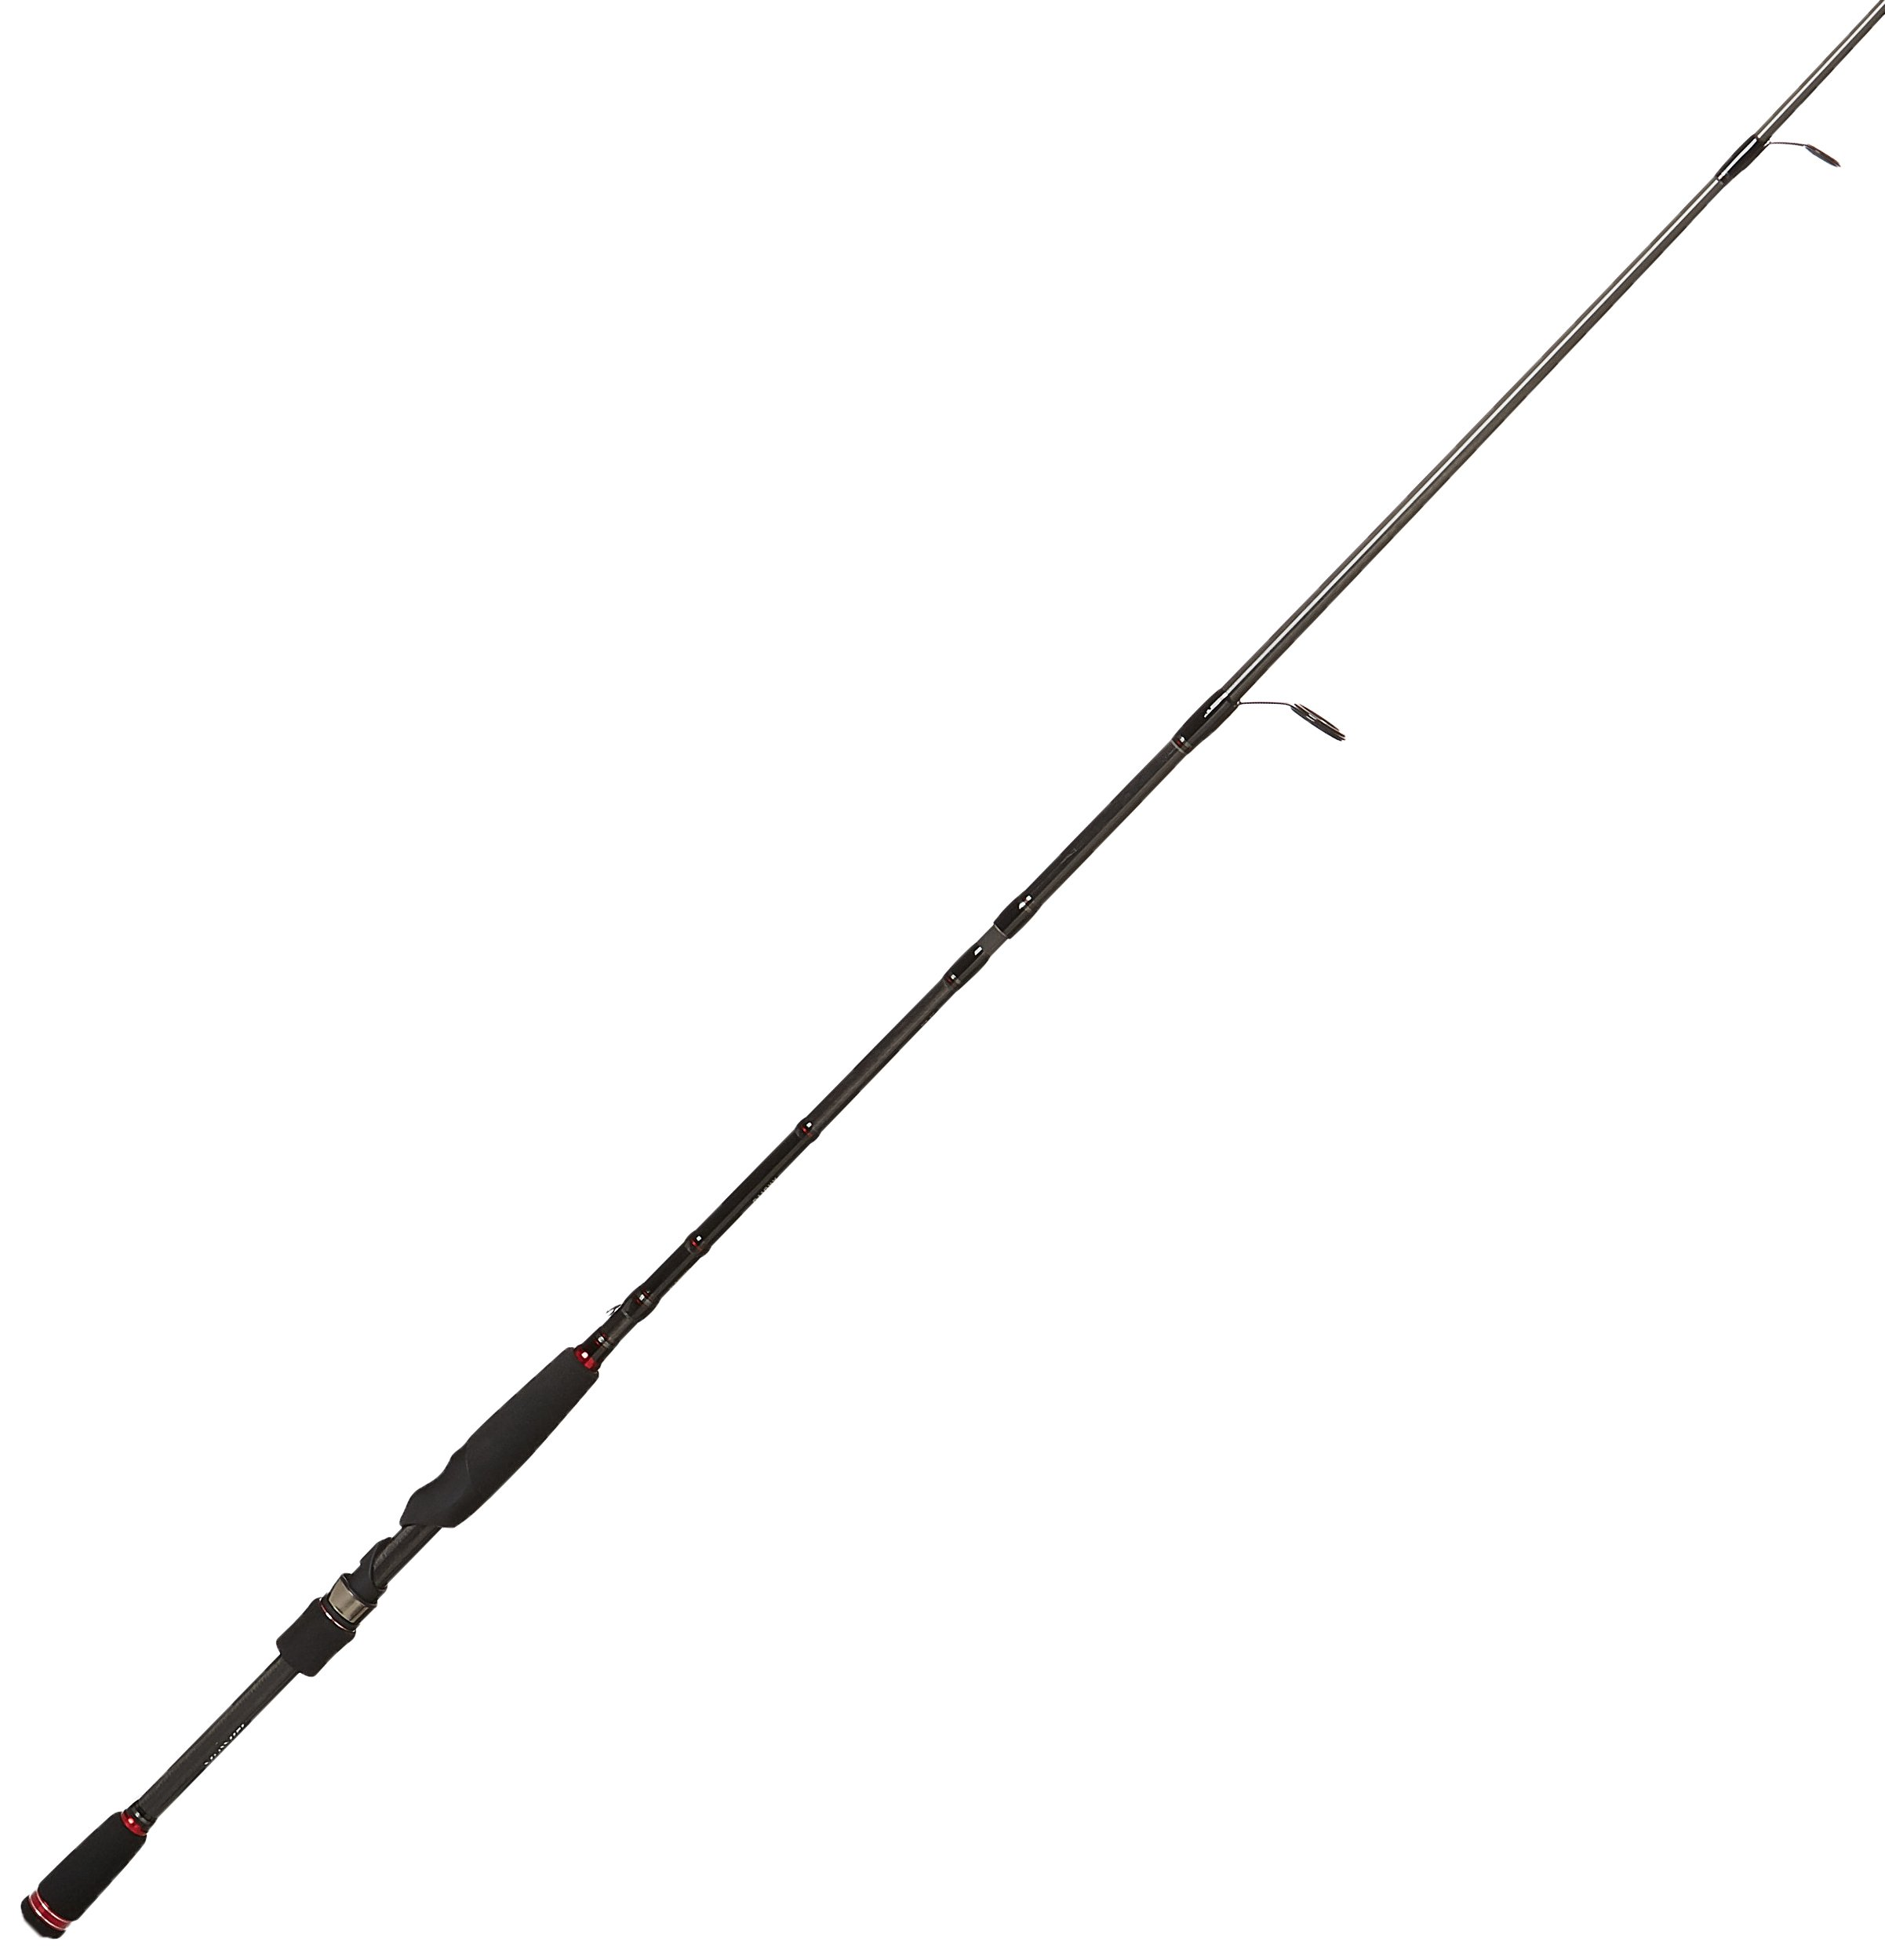 Daiwa ARDT703MHFS-TR Ardito Travel Rod Spinning Rod (3 Piece) 7'